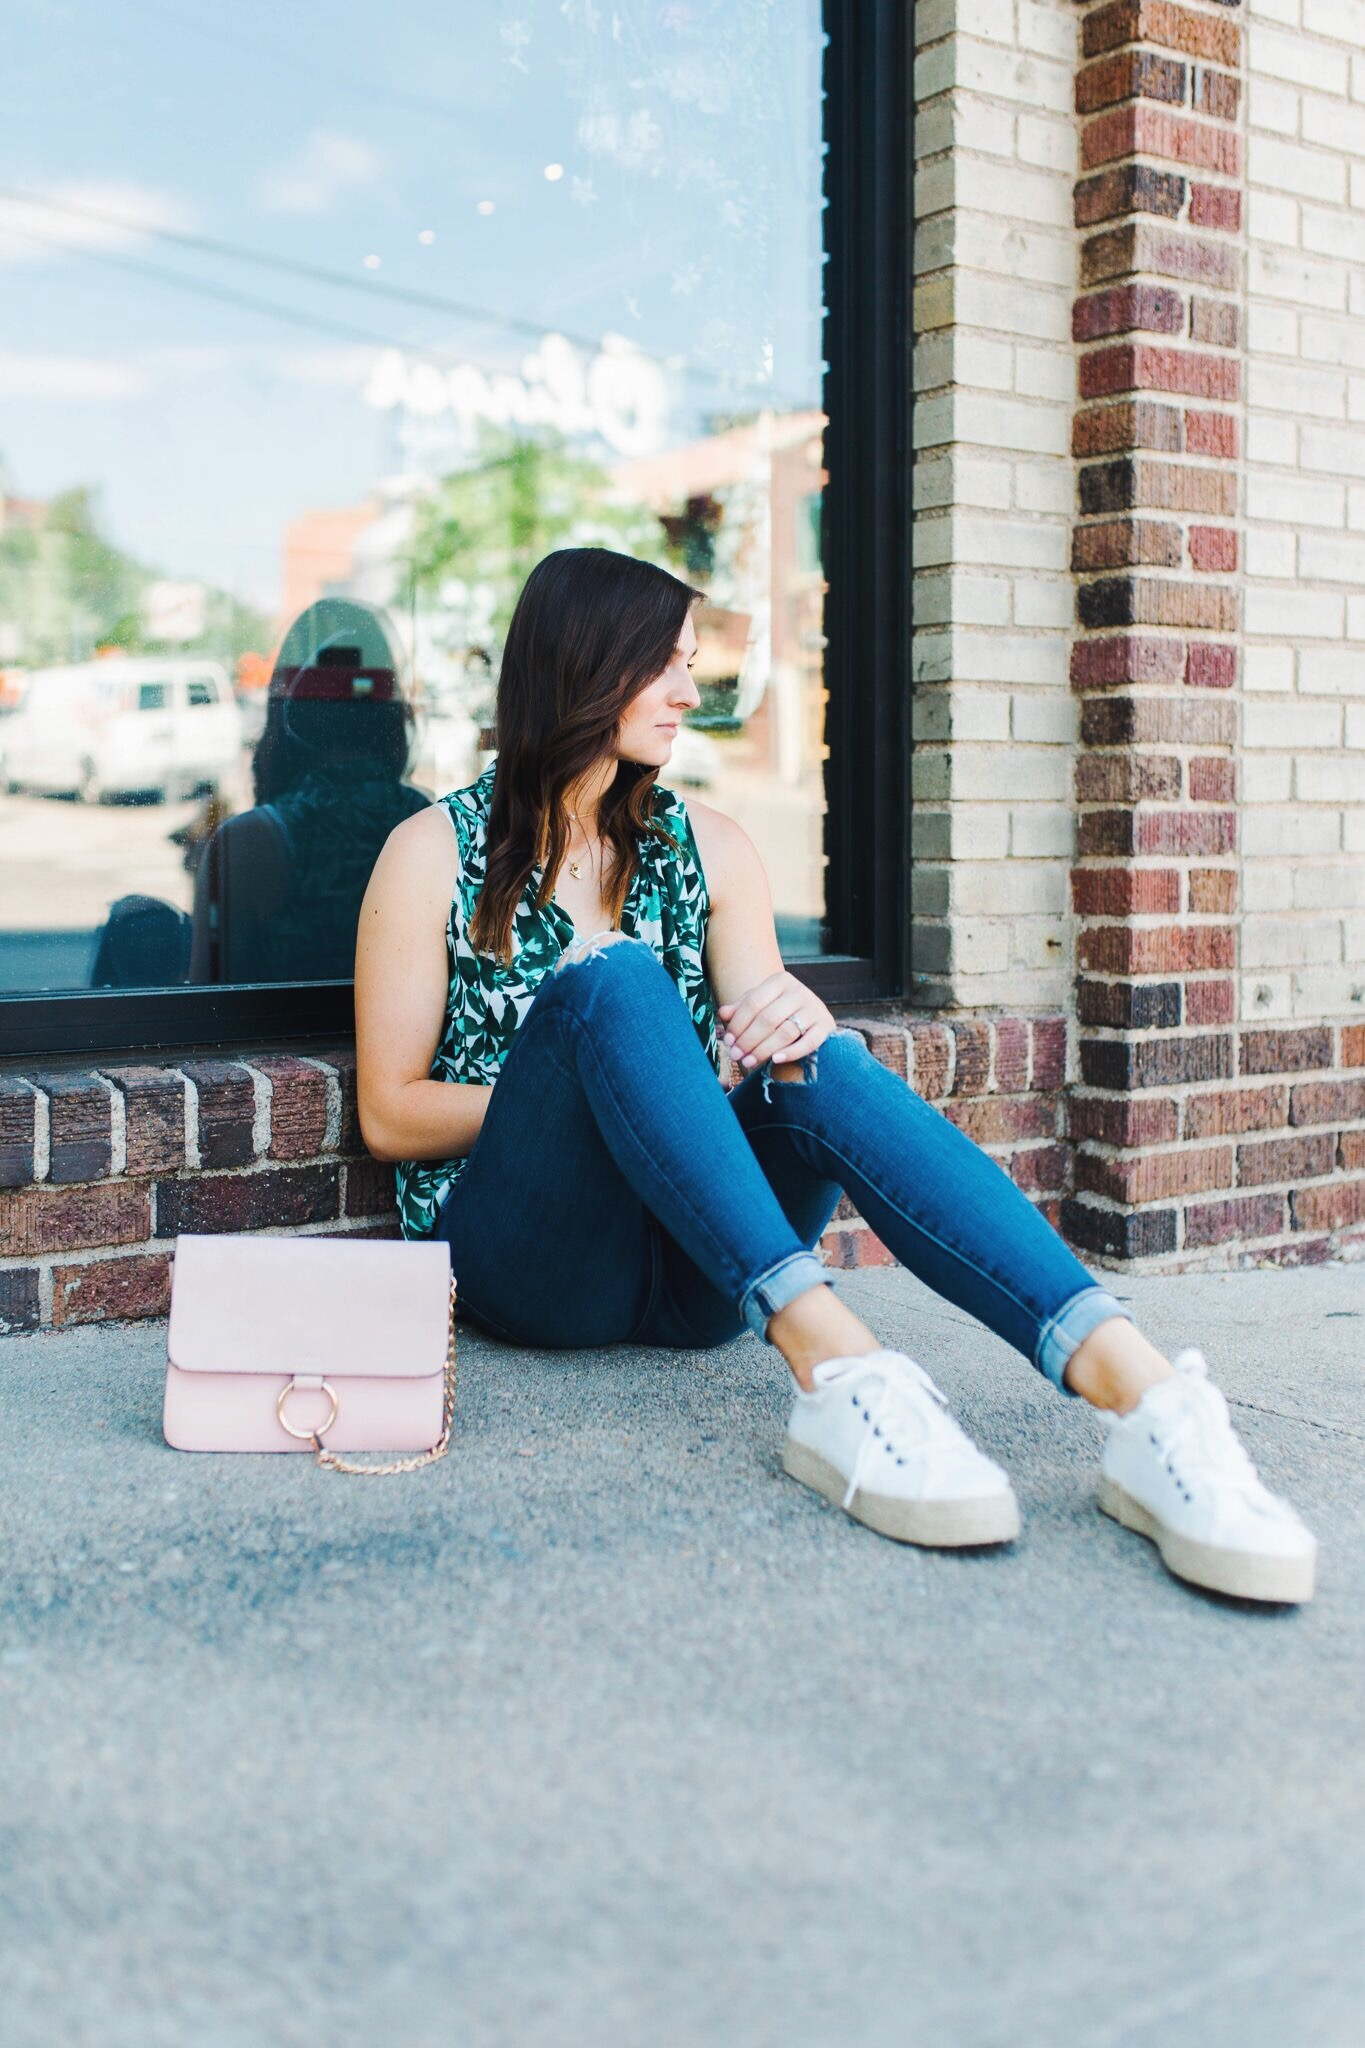 """<img src= five-summer-pieces-to-have-in-your-closet.jpg"""" alt= """"denver-fashion-blogger-sitting-in-front-of-a-store-wearing-summer-essential-pieces-to-have-in-your-closet-bold-patterned-tank-top-blouse-white-espadrille-platform-sneakers-ag-adriano-goldschmied-11-year-swapmeet-distressed-skinny-jeans-light-pink-chloe-faye-dupe-bag"""">"""